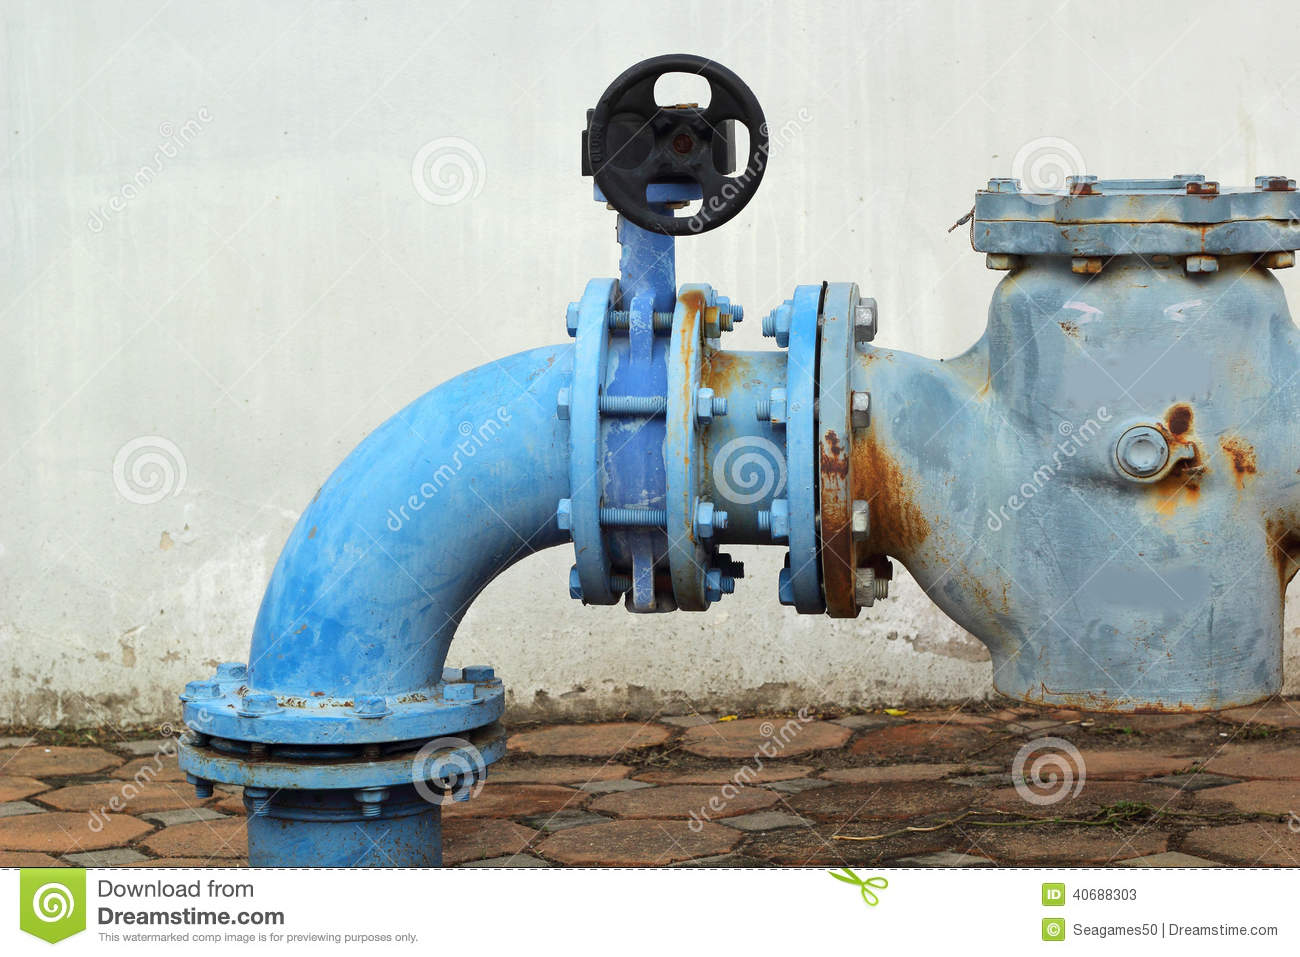 Steel Water Pipes : Blue rusty metal industrial water pipes with a valve